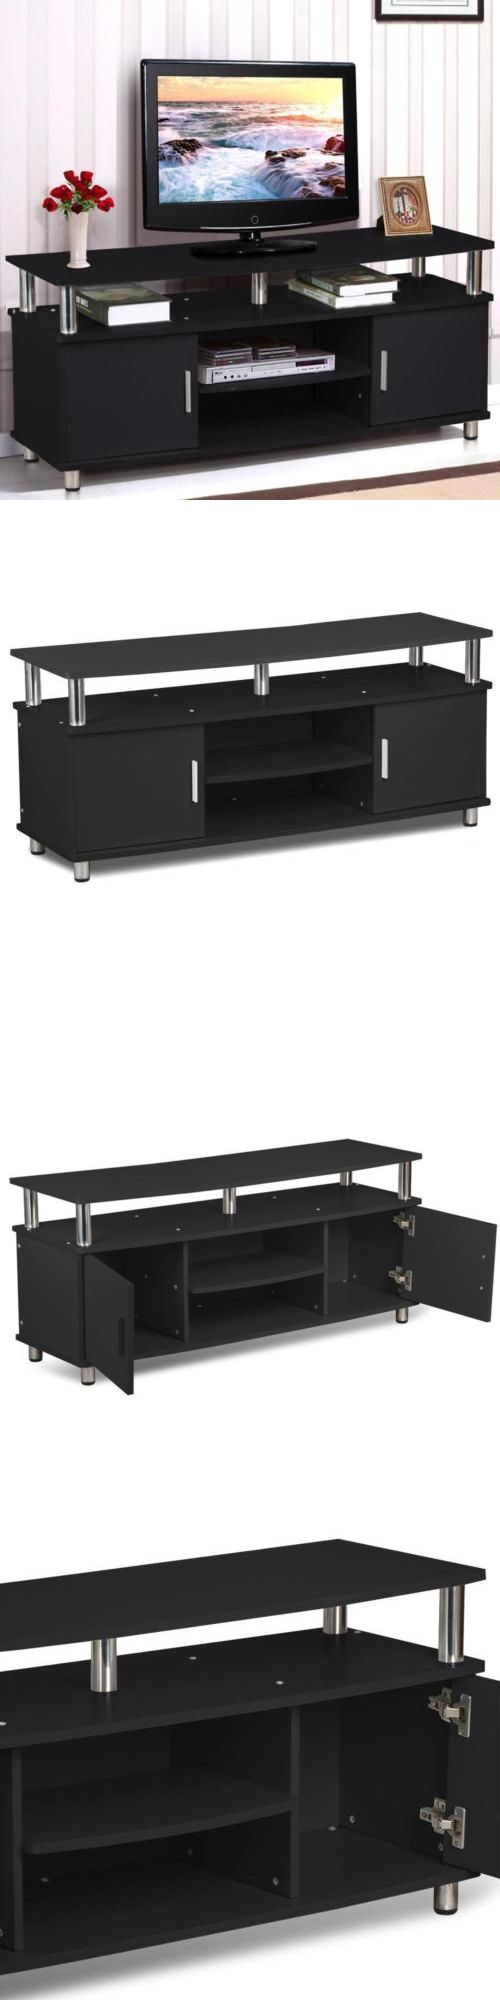 Home shop live tv stands chunky stretch tv stand - Entertainment Units Tv Stands 20488 Tv Stand Entertainment Center Media Console Storage Cabinet Furniture Wooden